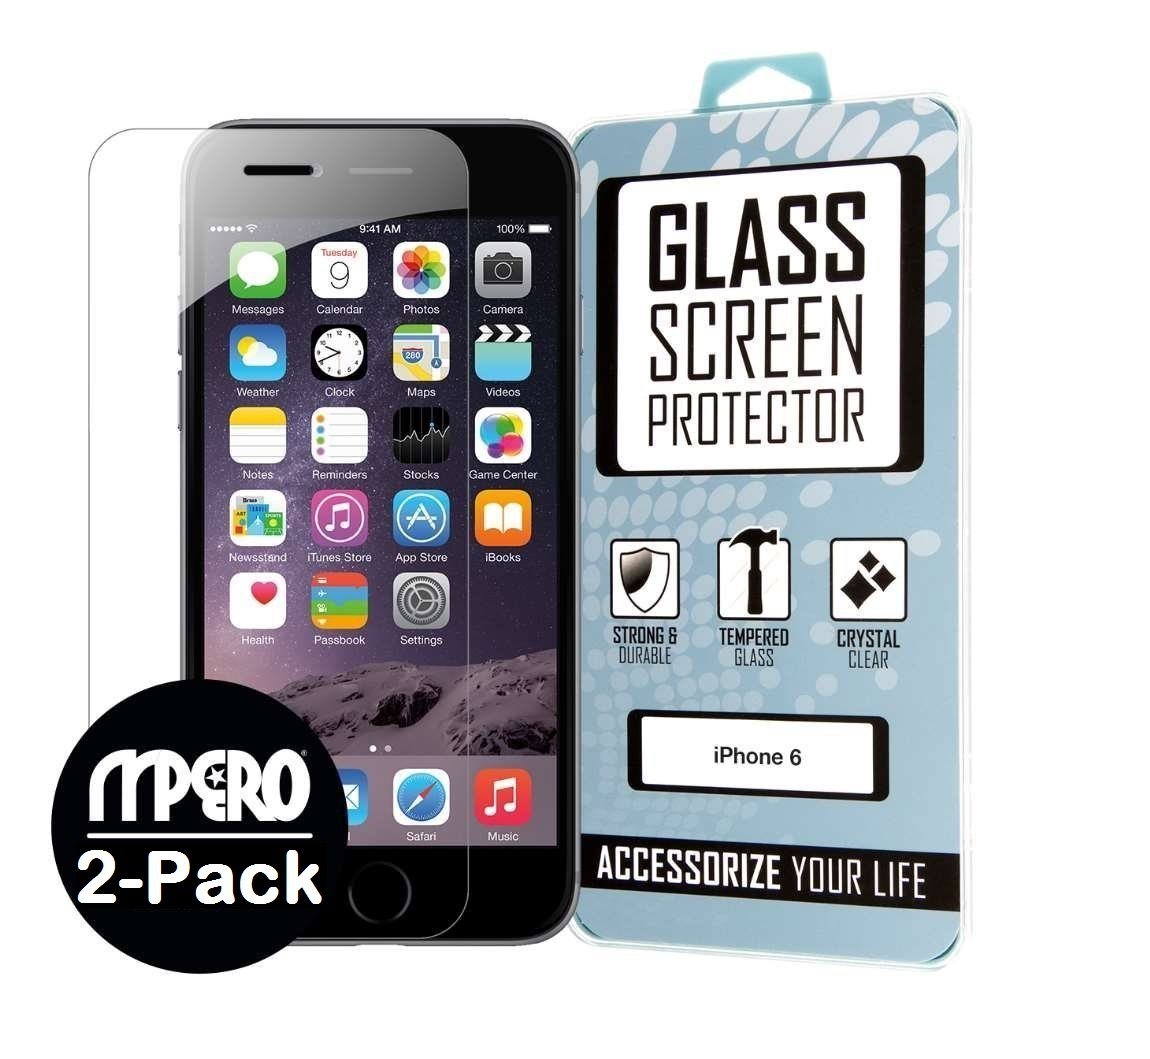 Iphone 7 / Iphone 6 / Iphone 6S Glass Screen Protector Covers (2 Pack) Bubble.. 12